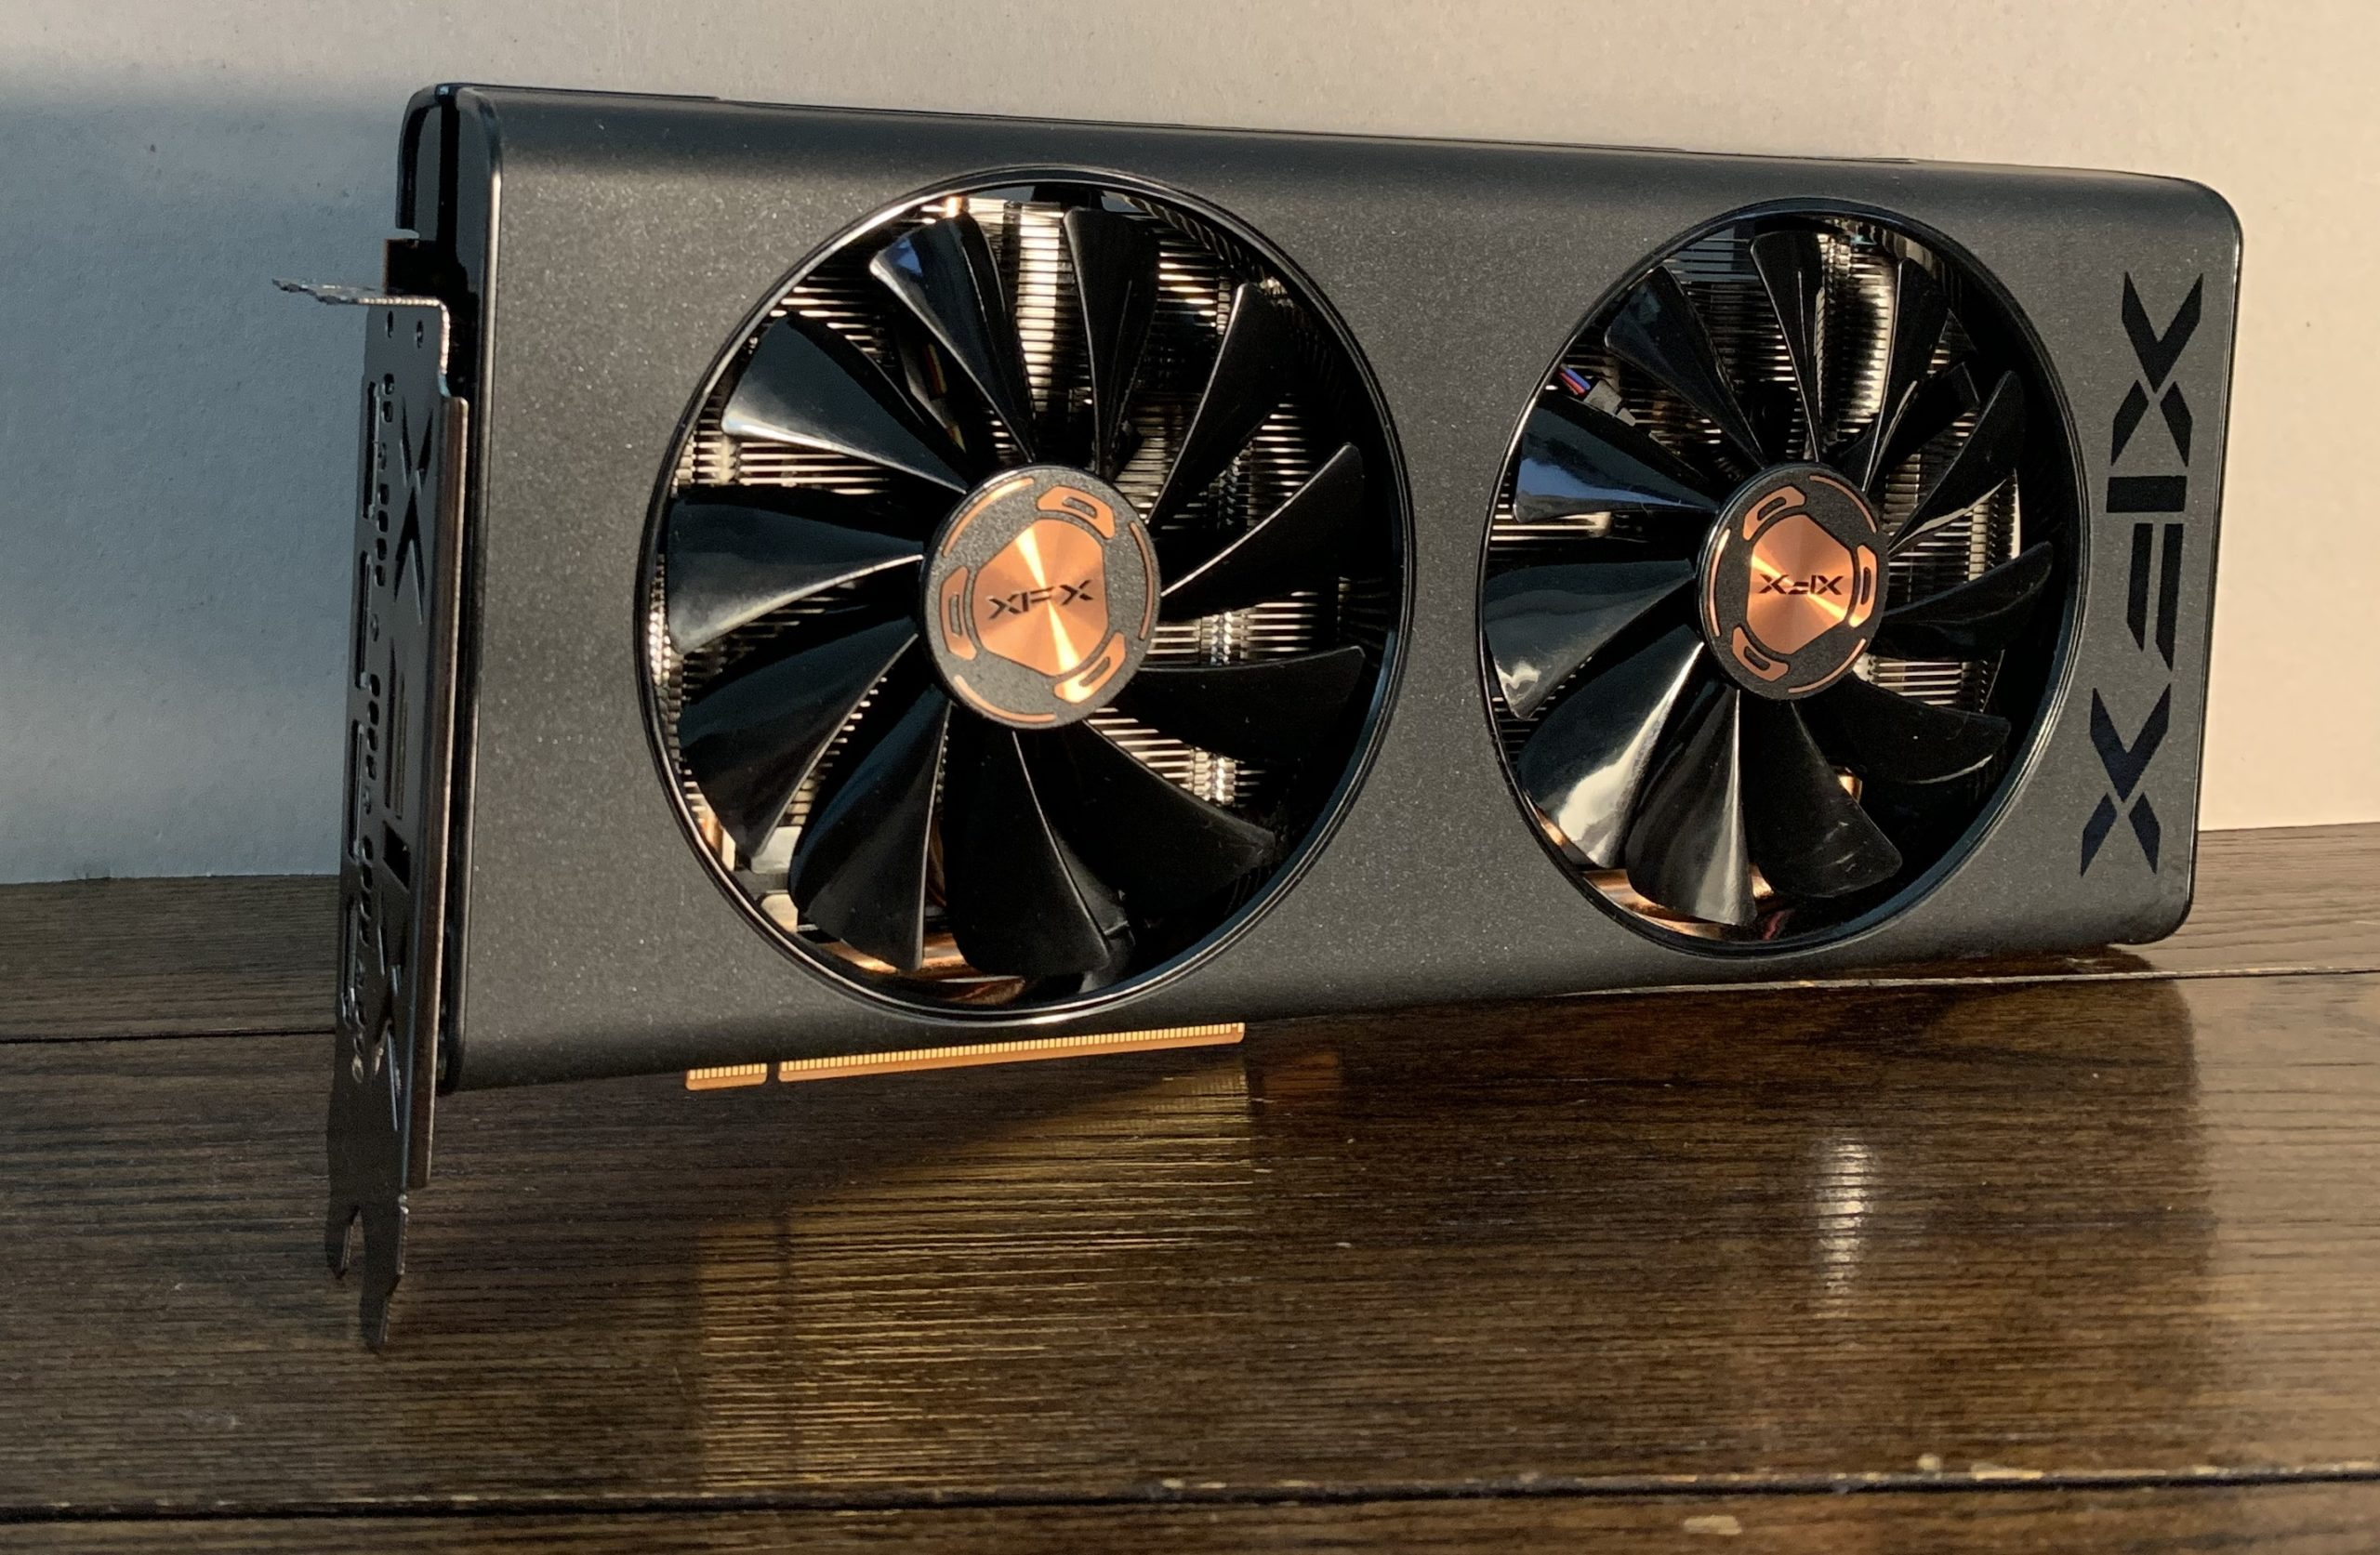 XFX Radeon RX 5500 XT THICC II Pro 4GB Review - The FPS Review